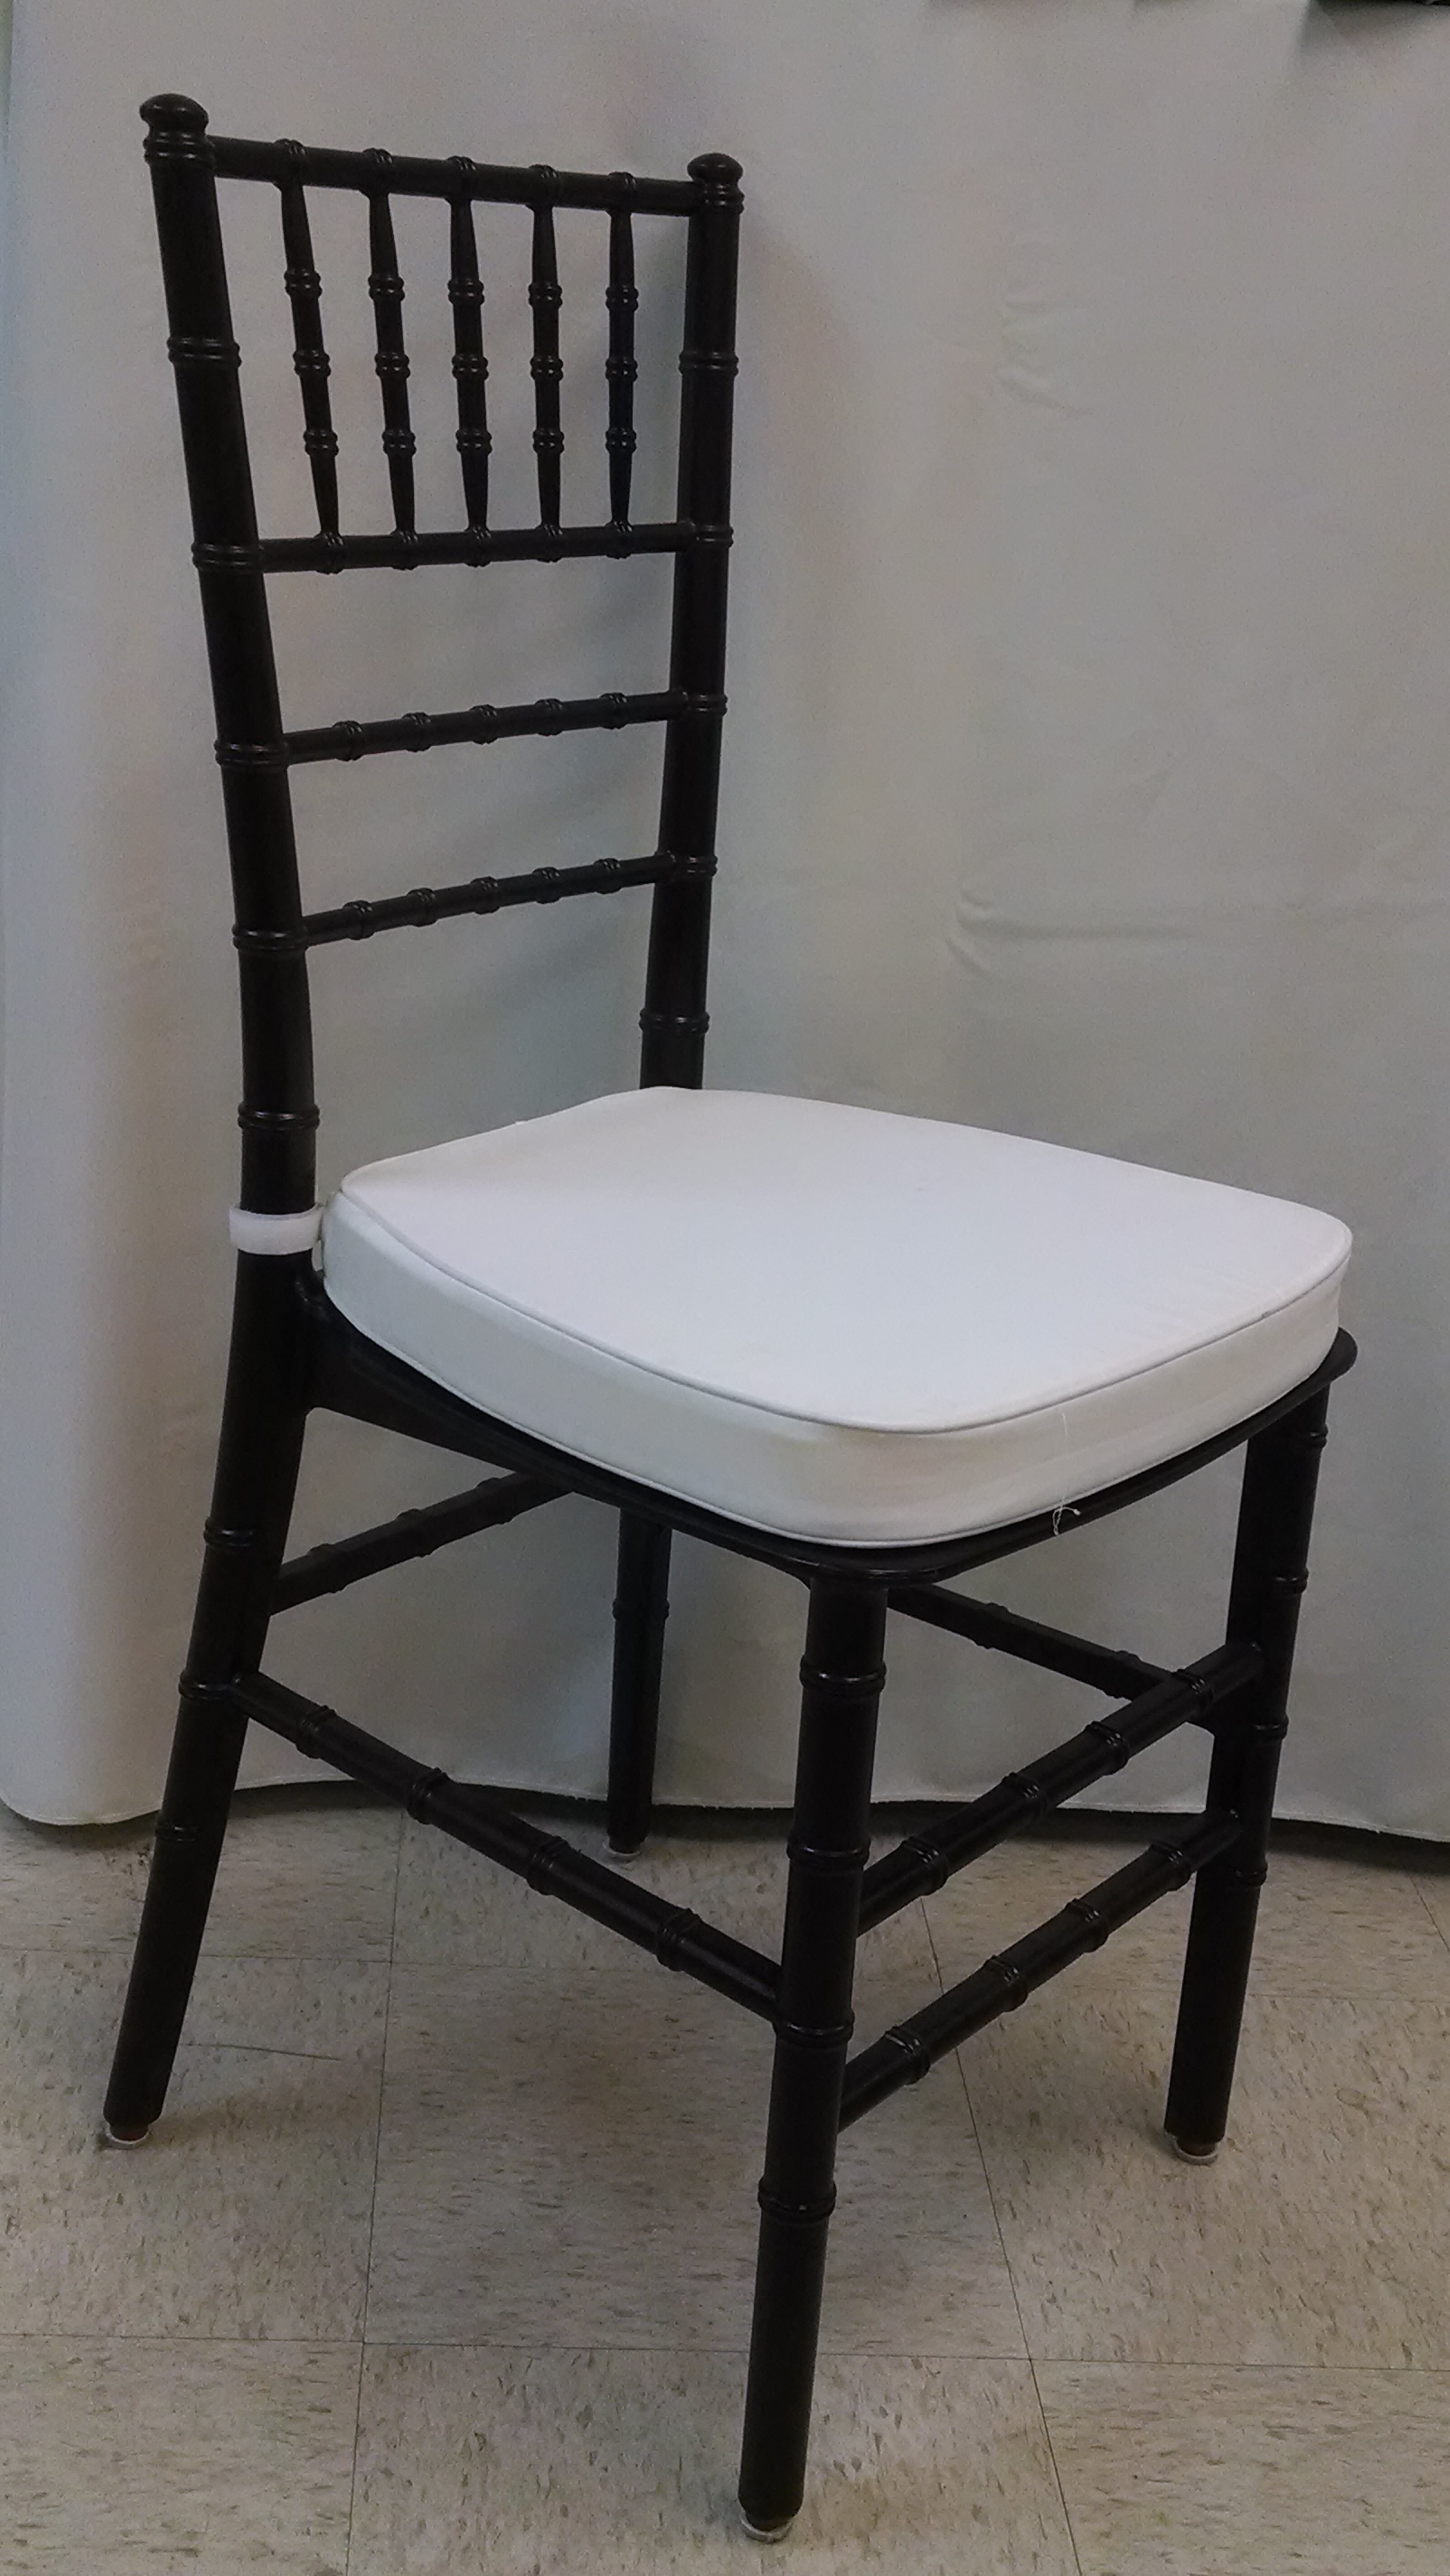 Mahogany Chiavari Chair Tables And Chairs Knight 39s Rental Making Your Event A